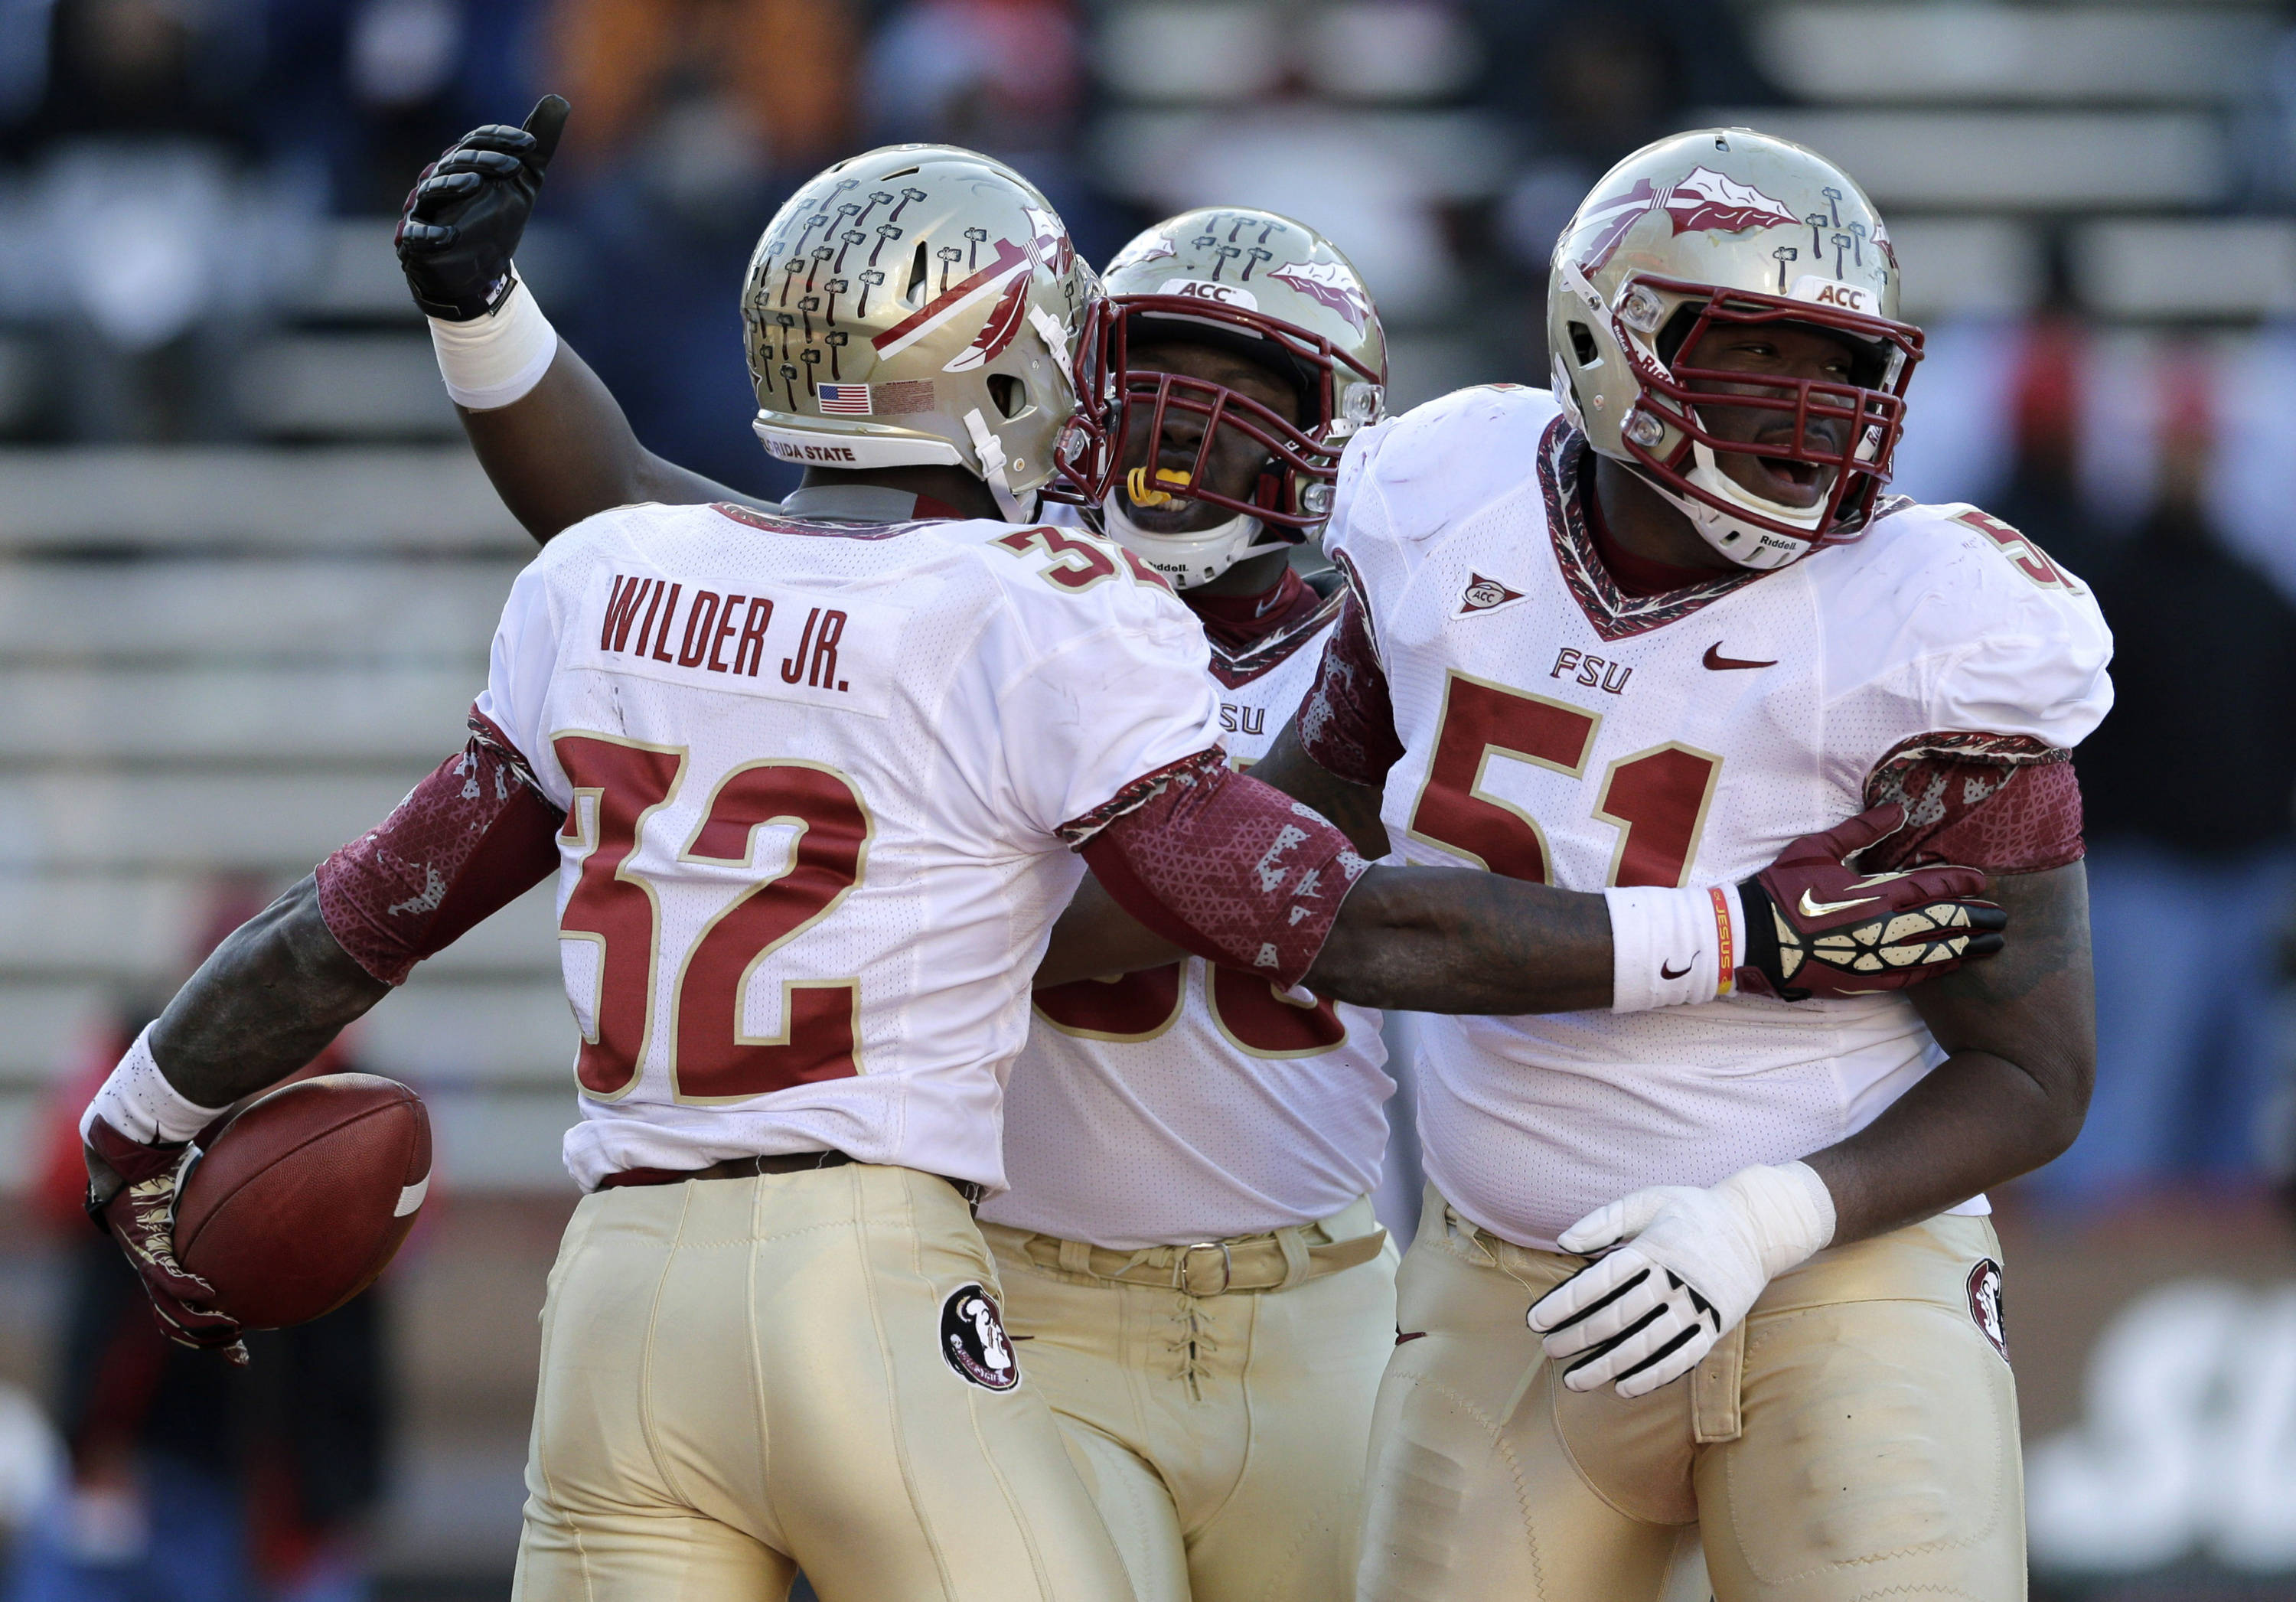 Running back James Wilder, Jr. celebrates his touchdown with teammates Ruben Carter and Bobby Hart in the second half of an NCAA college football game against Maryland in College Park, Md., Saturday, Nov. 17, 2012. Florida State won 41-14. (AP Photo/Patrick Semansky)